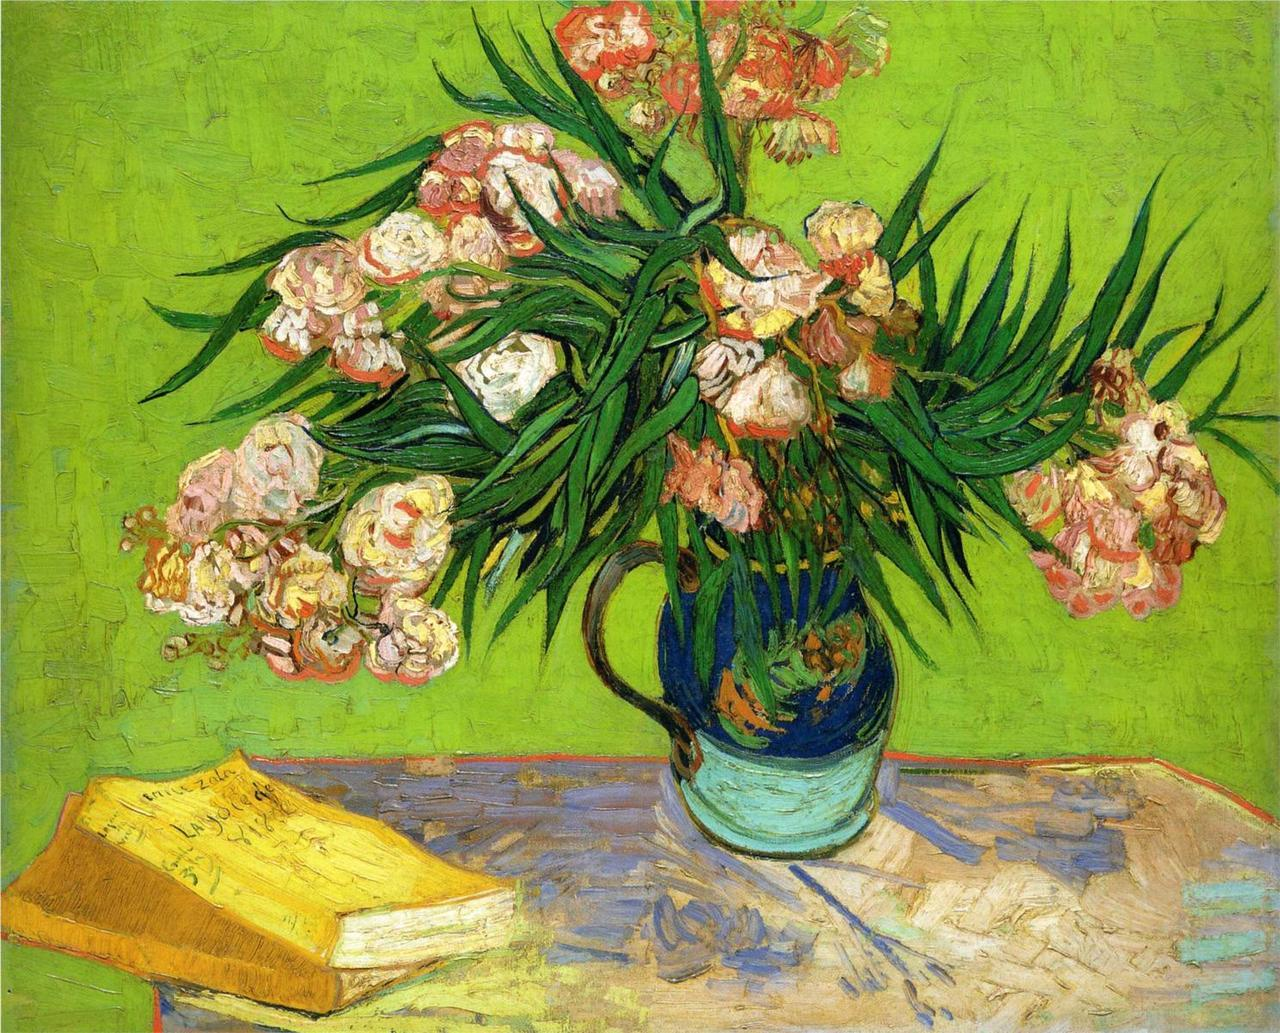 nevver:  Vase with Oleanders and Books, Vincent van Gogh